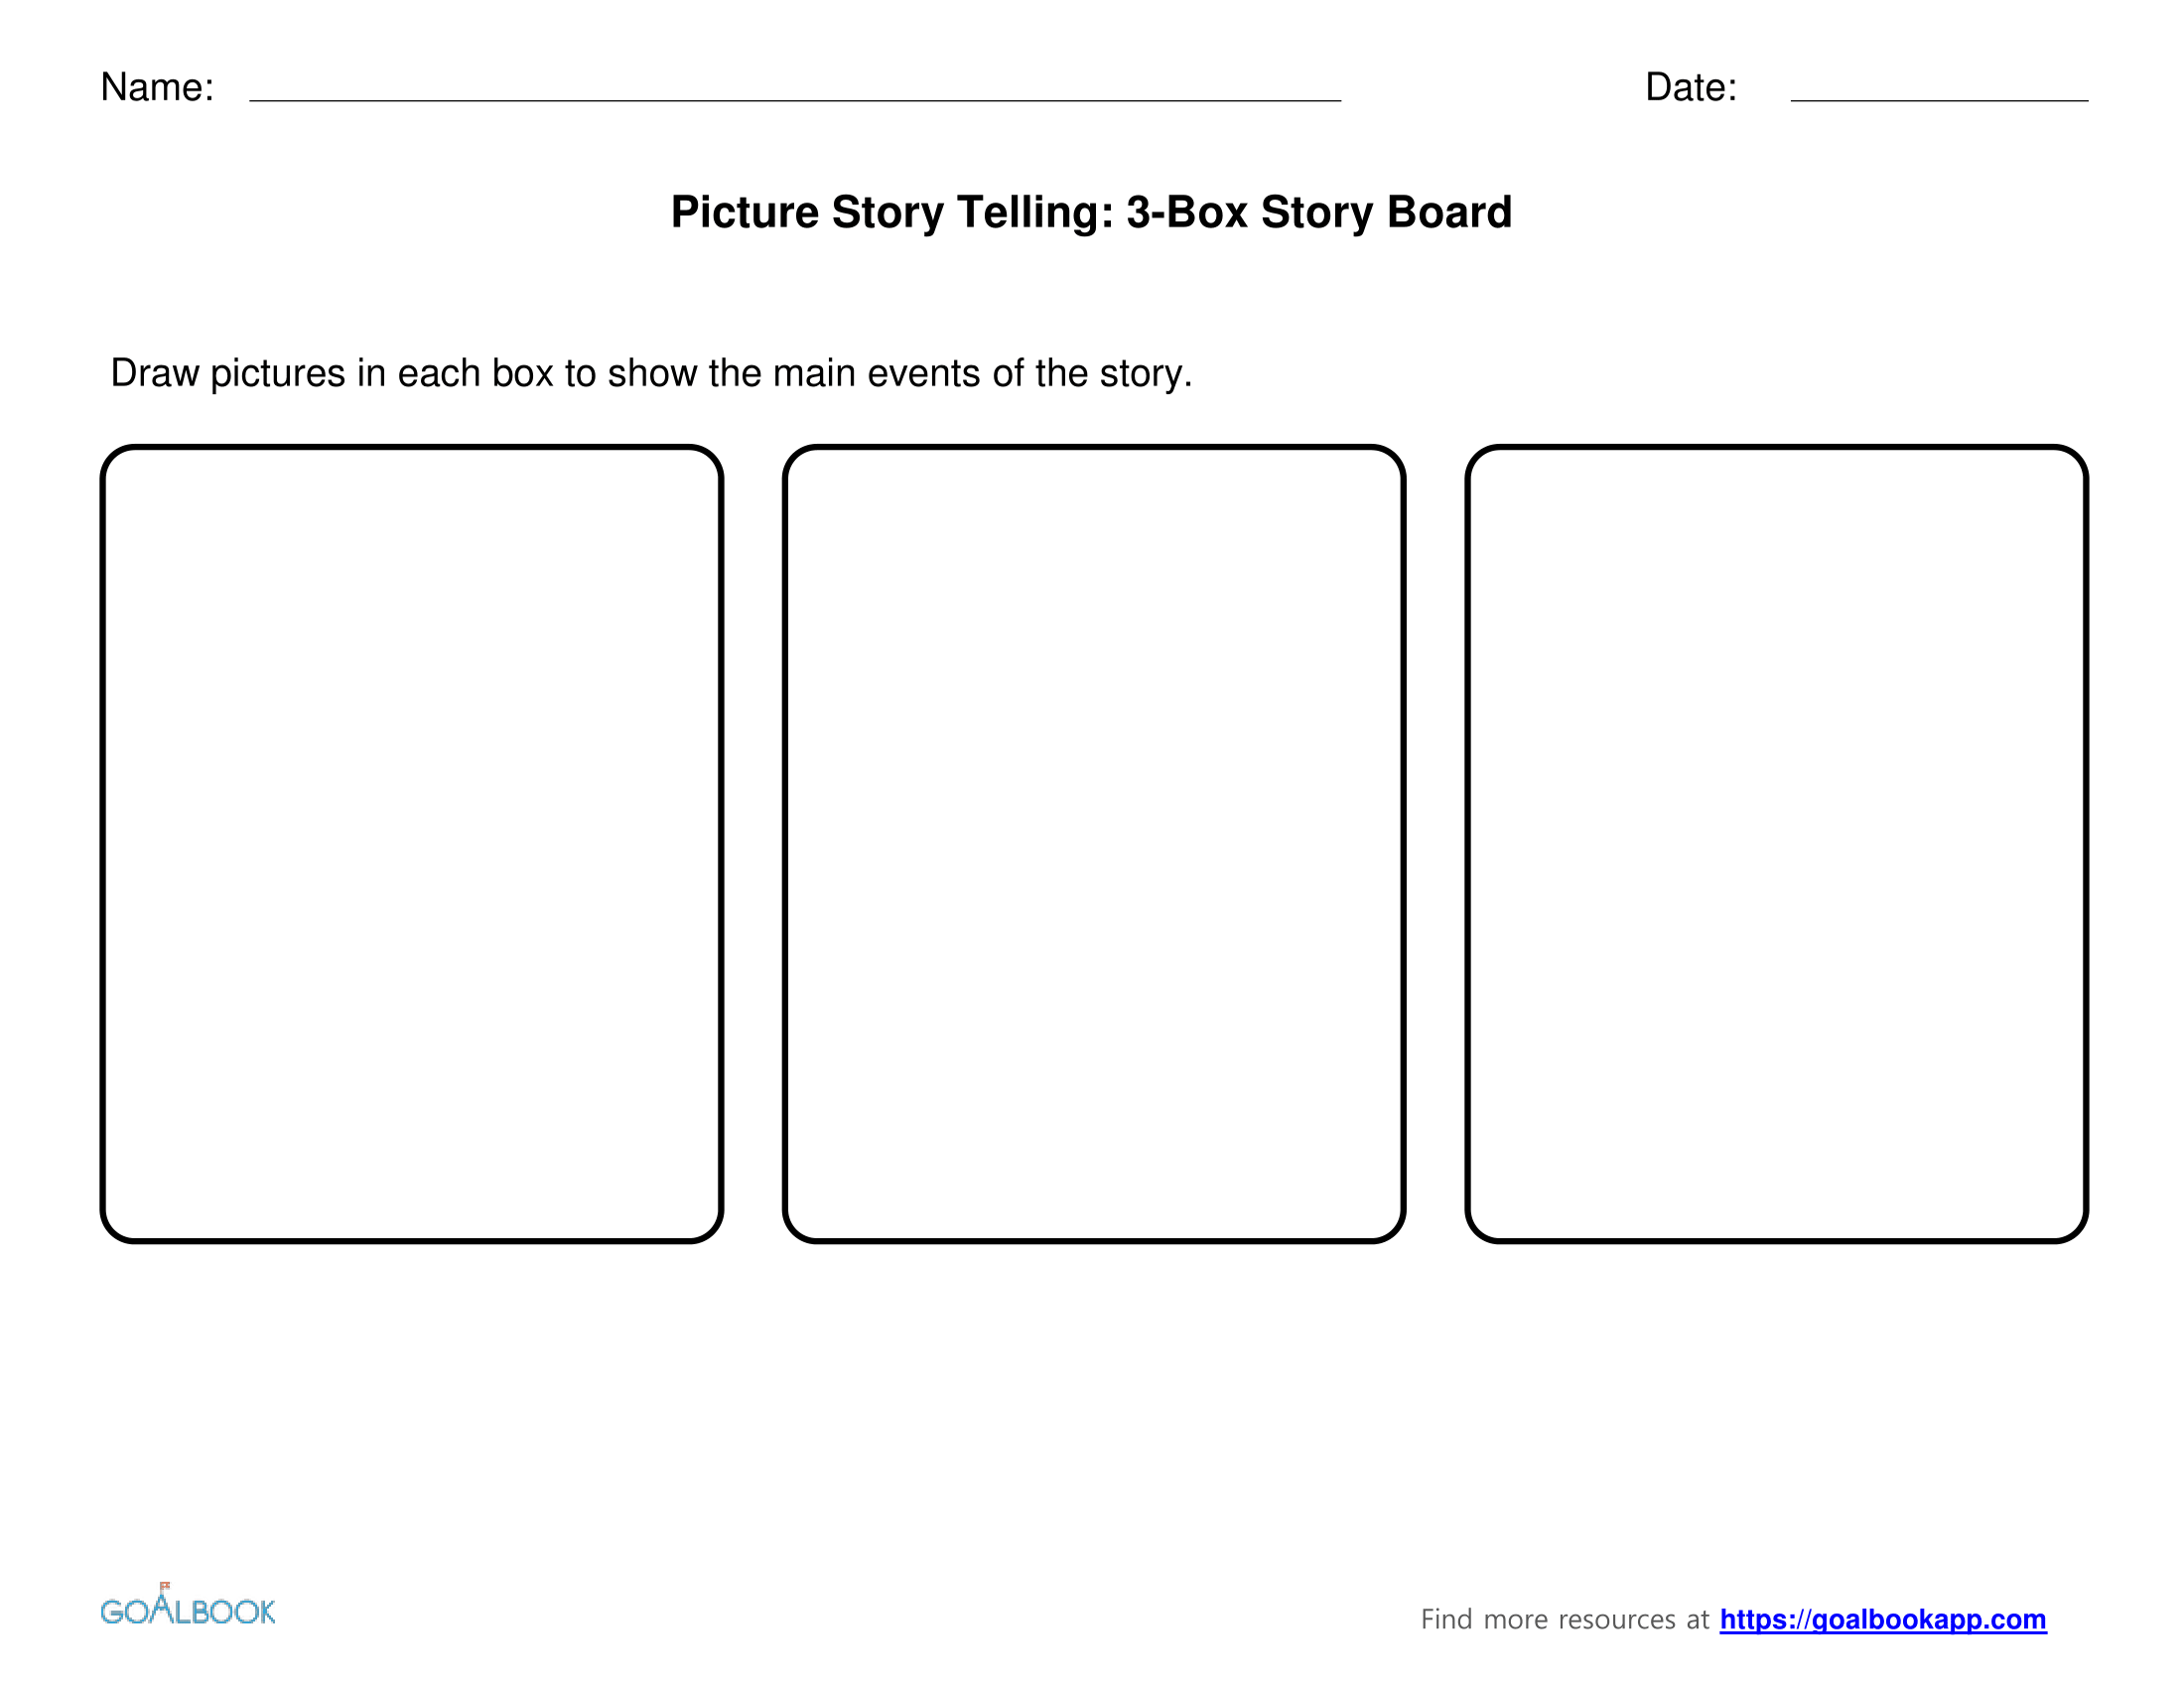 3-Box Story Board Templates